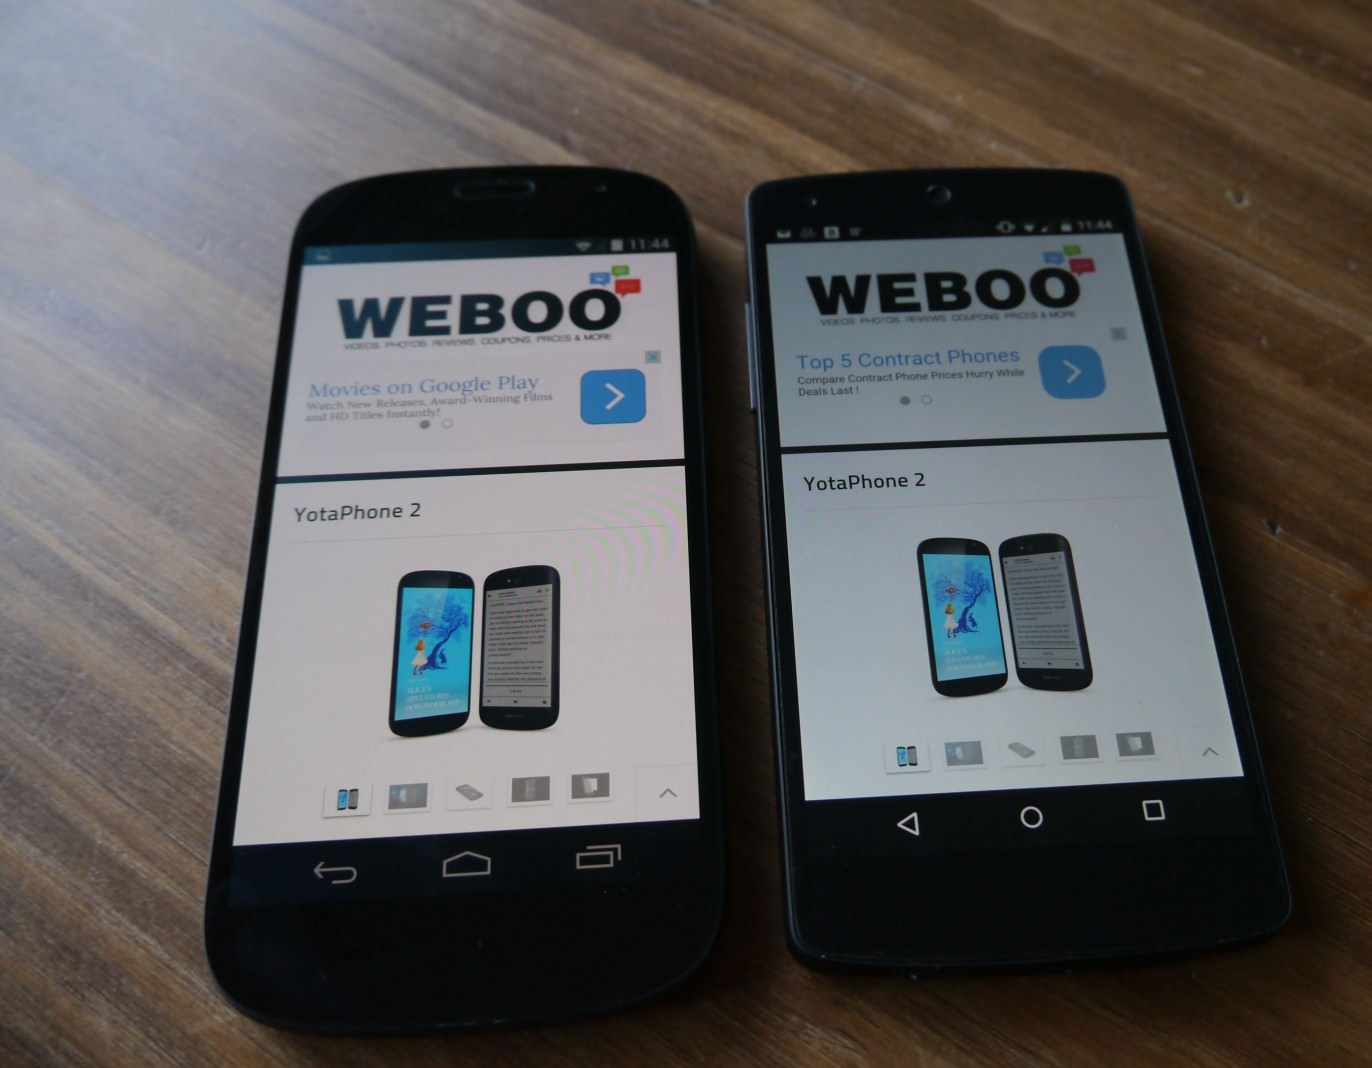 yotaphone-2-review-display-weboo-co-4